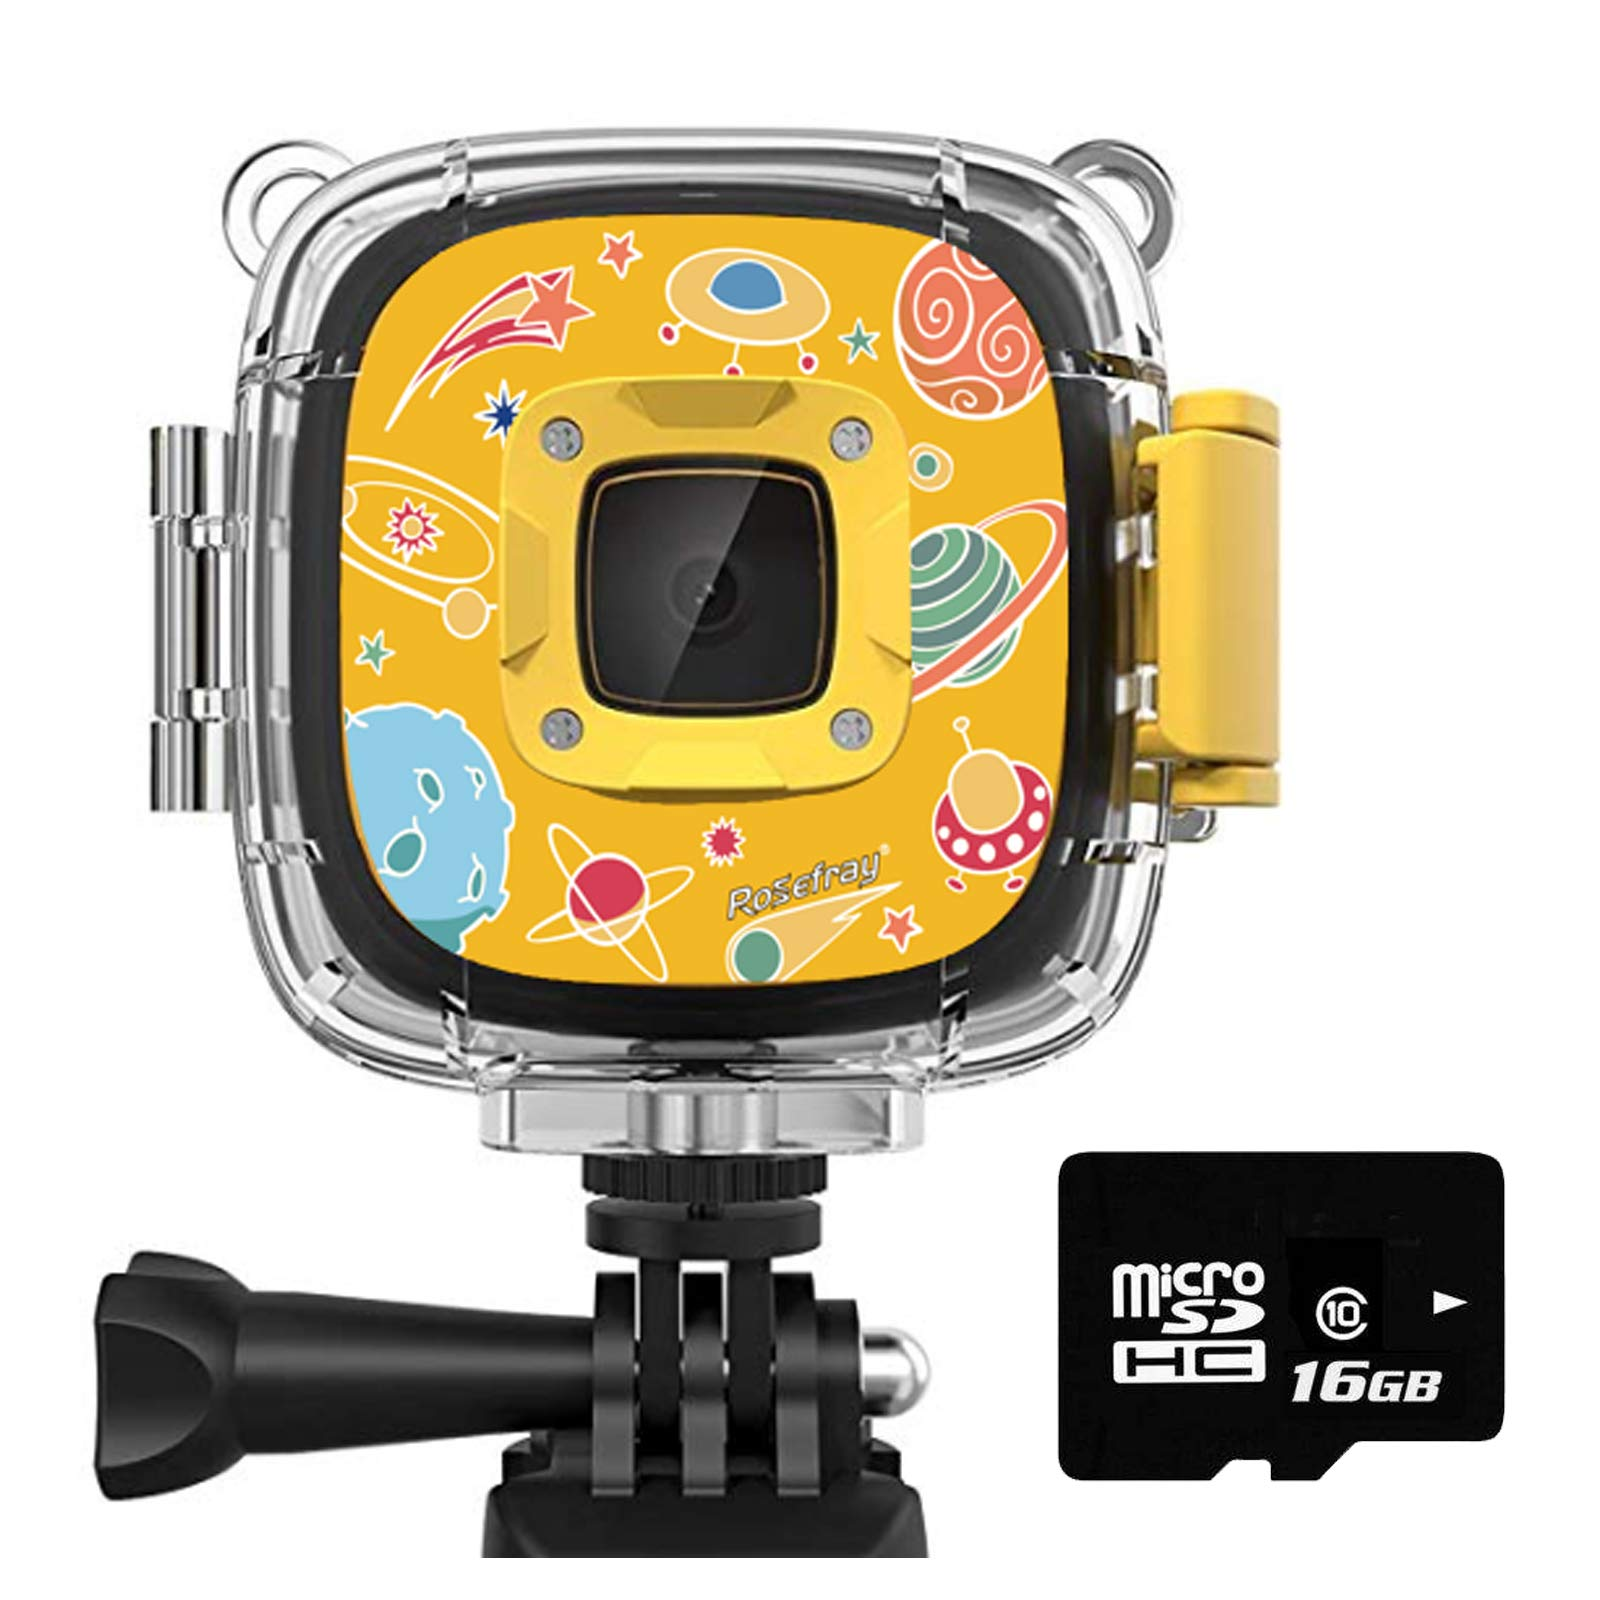 Rosefray Kids Camera,1080P HD Kids Action Camera, Sports Kids Digital Cameras for Boys and Girls, 16GB SD Card, Yellow by Rosefray (Image #1)